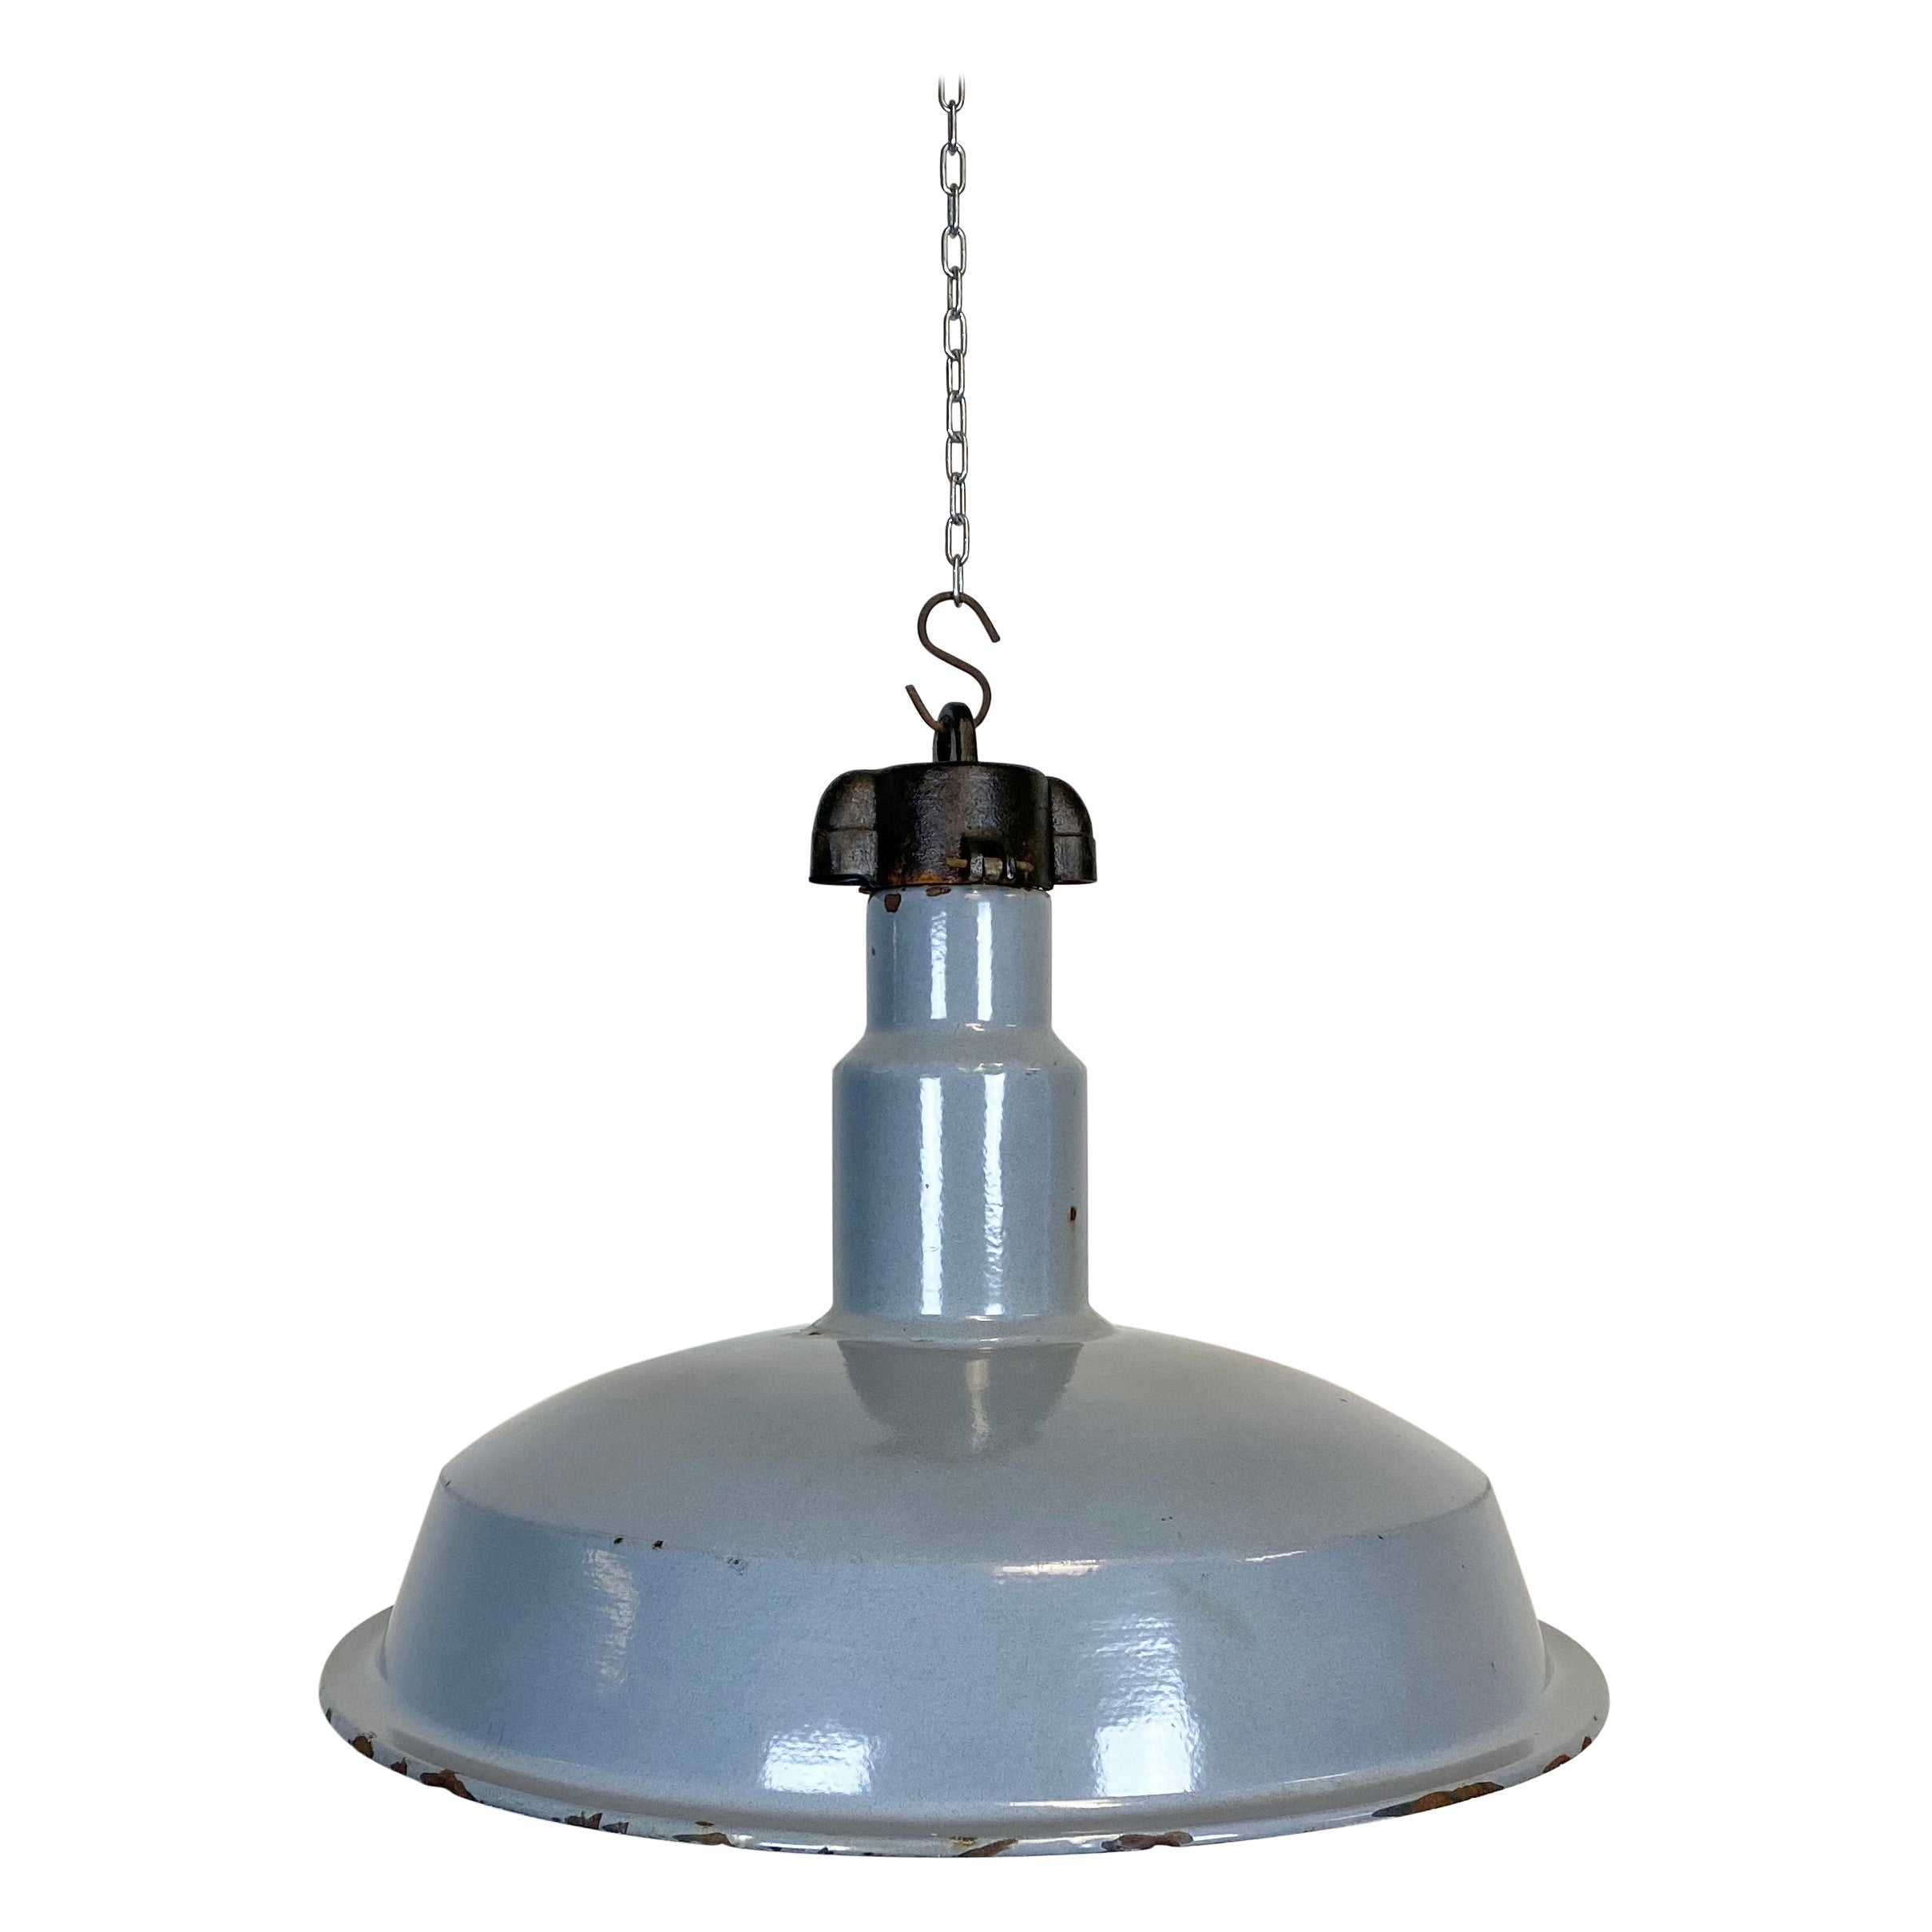 Midcentury Industrial Grey Enameled Factory Lamp, 1950s